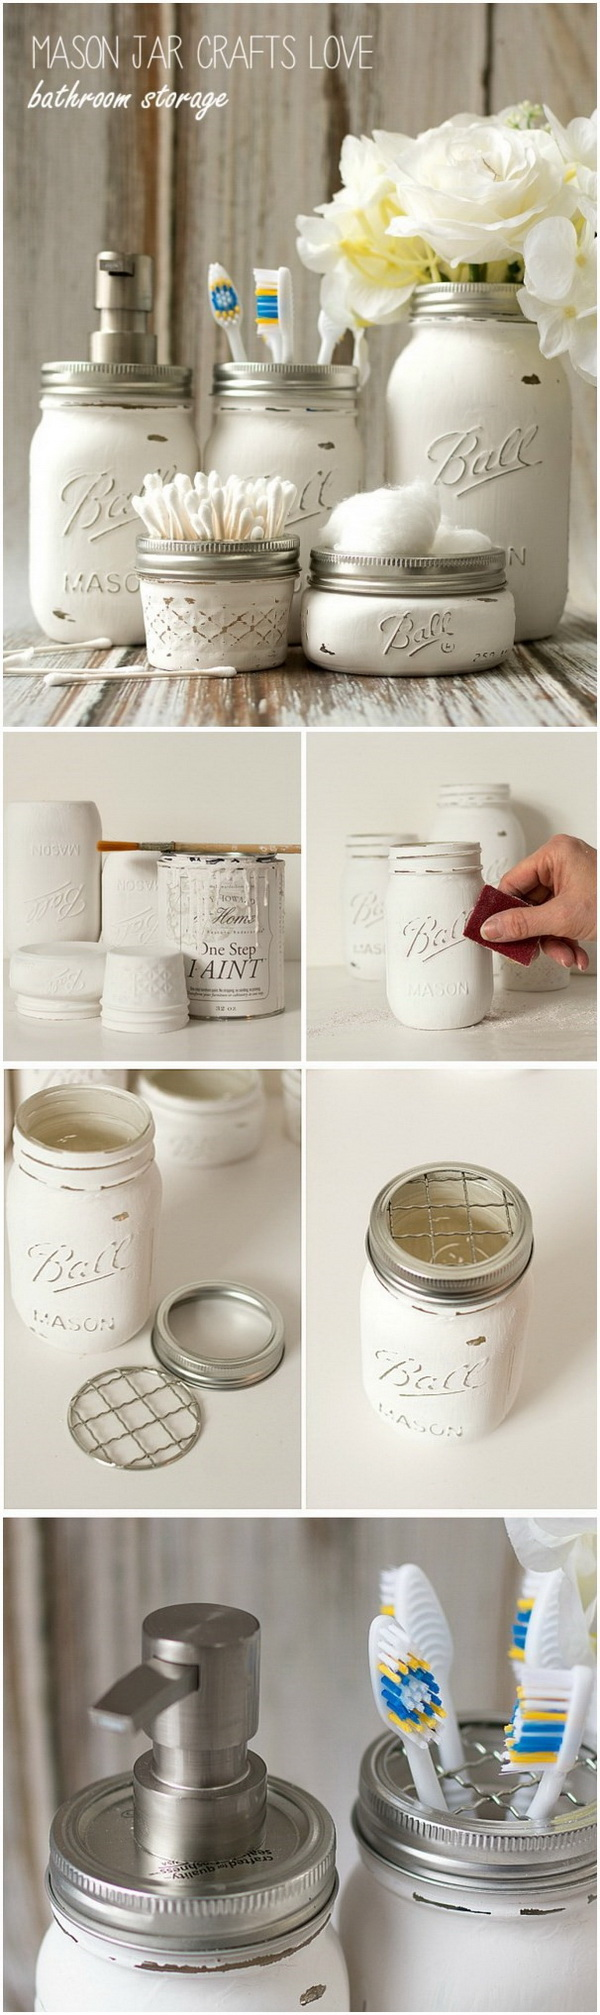 DIY Mason Jar Bathroom Storage.